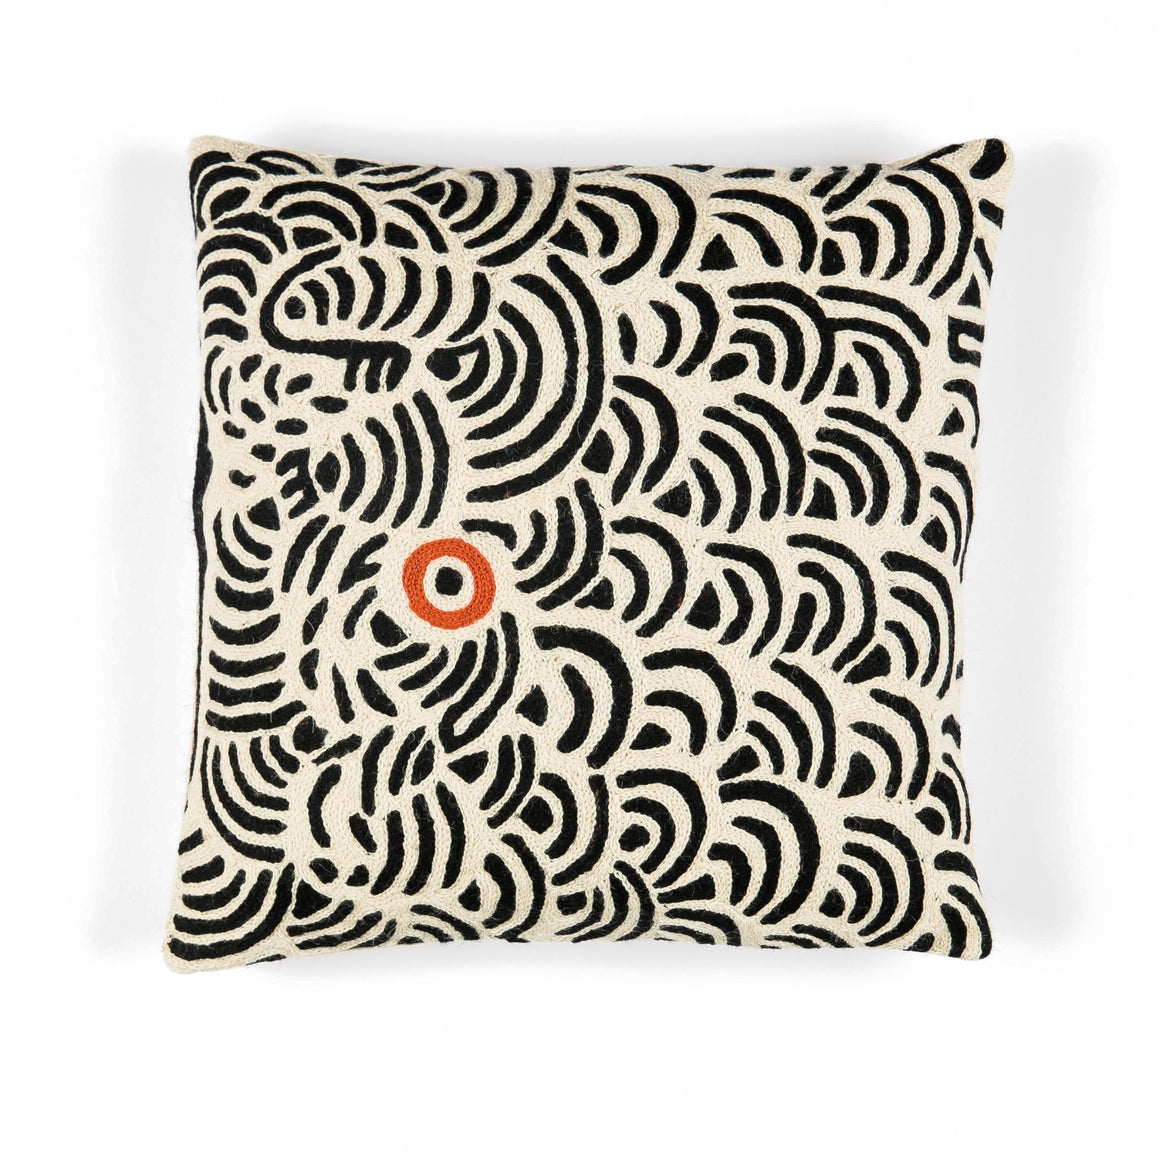 Cushion Cover 40cm - Nelly Patterson